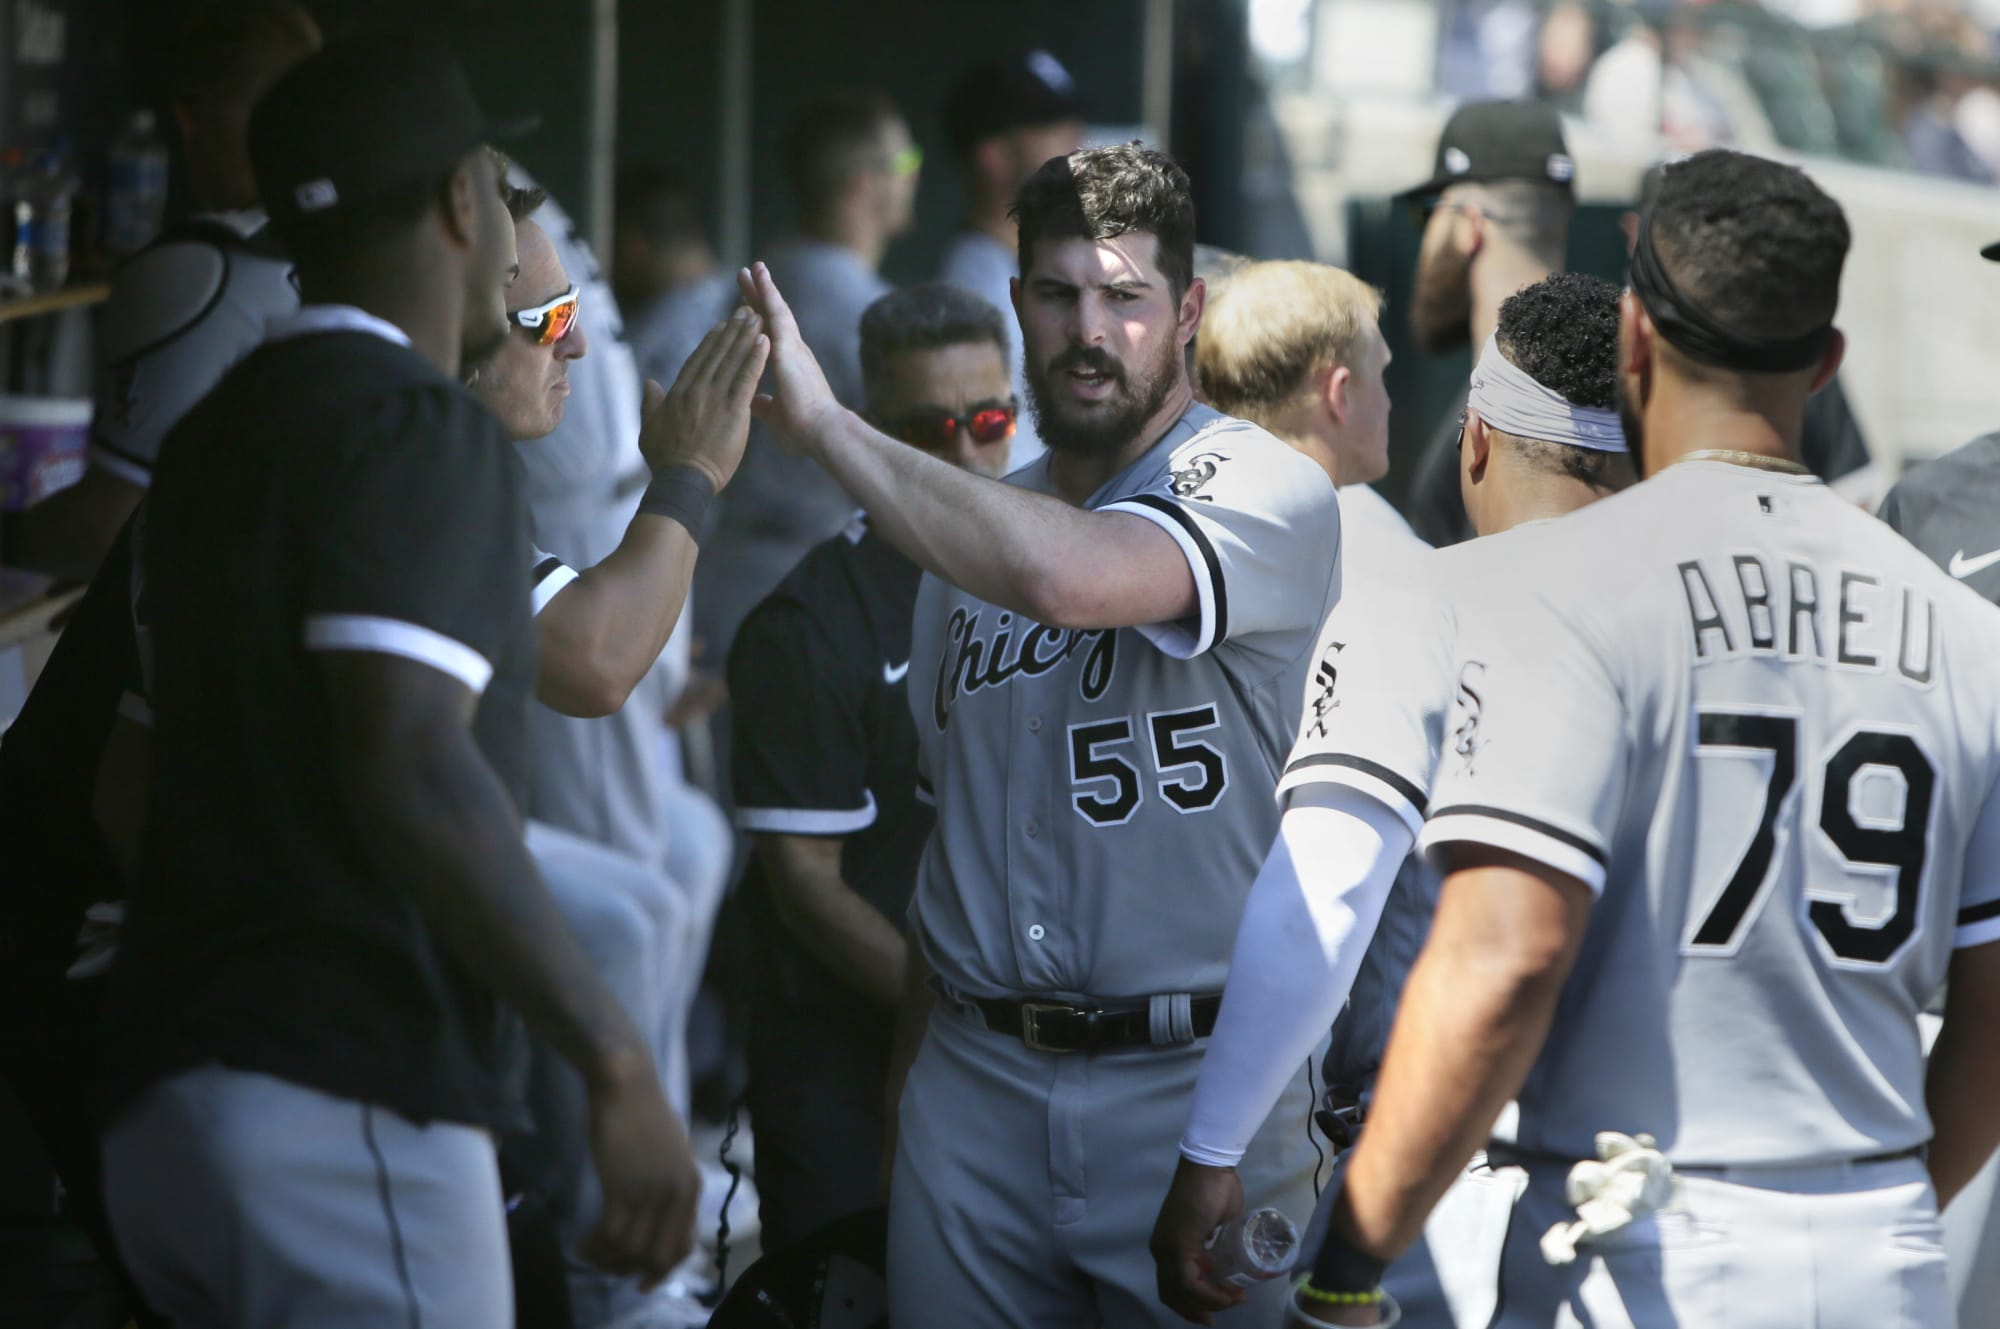 Chicago White Sox: 3 takeaways from the Tigers series sweep